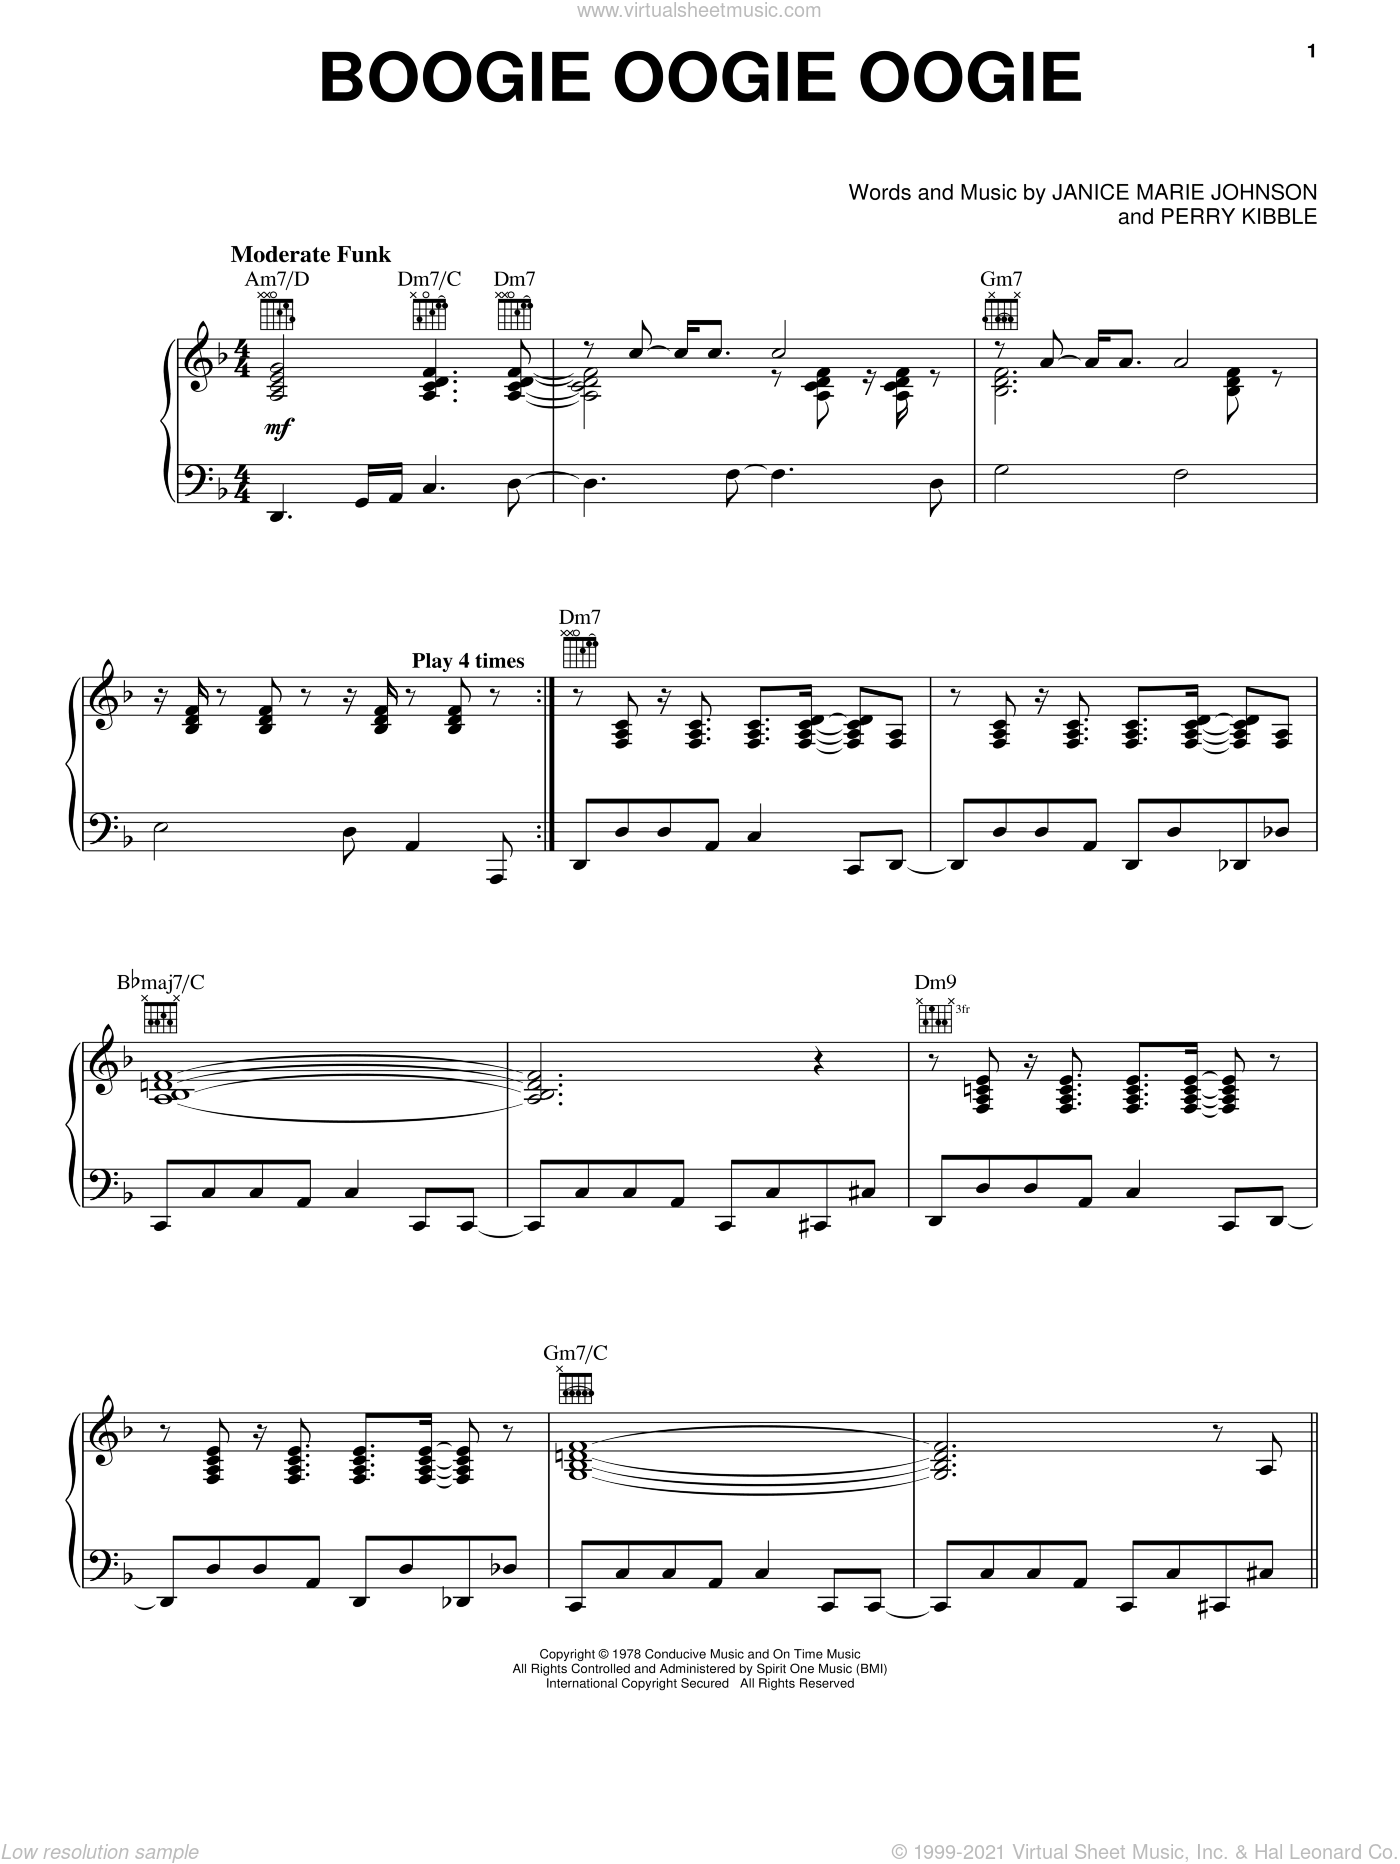 Boogie Oogie Oogie sheet music for voice, piano or guitar by A Taste Of Honey, Janice Marie Johnson and Perry Kibble, intermediate skill level